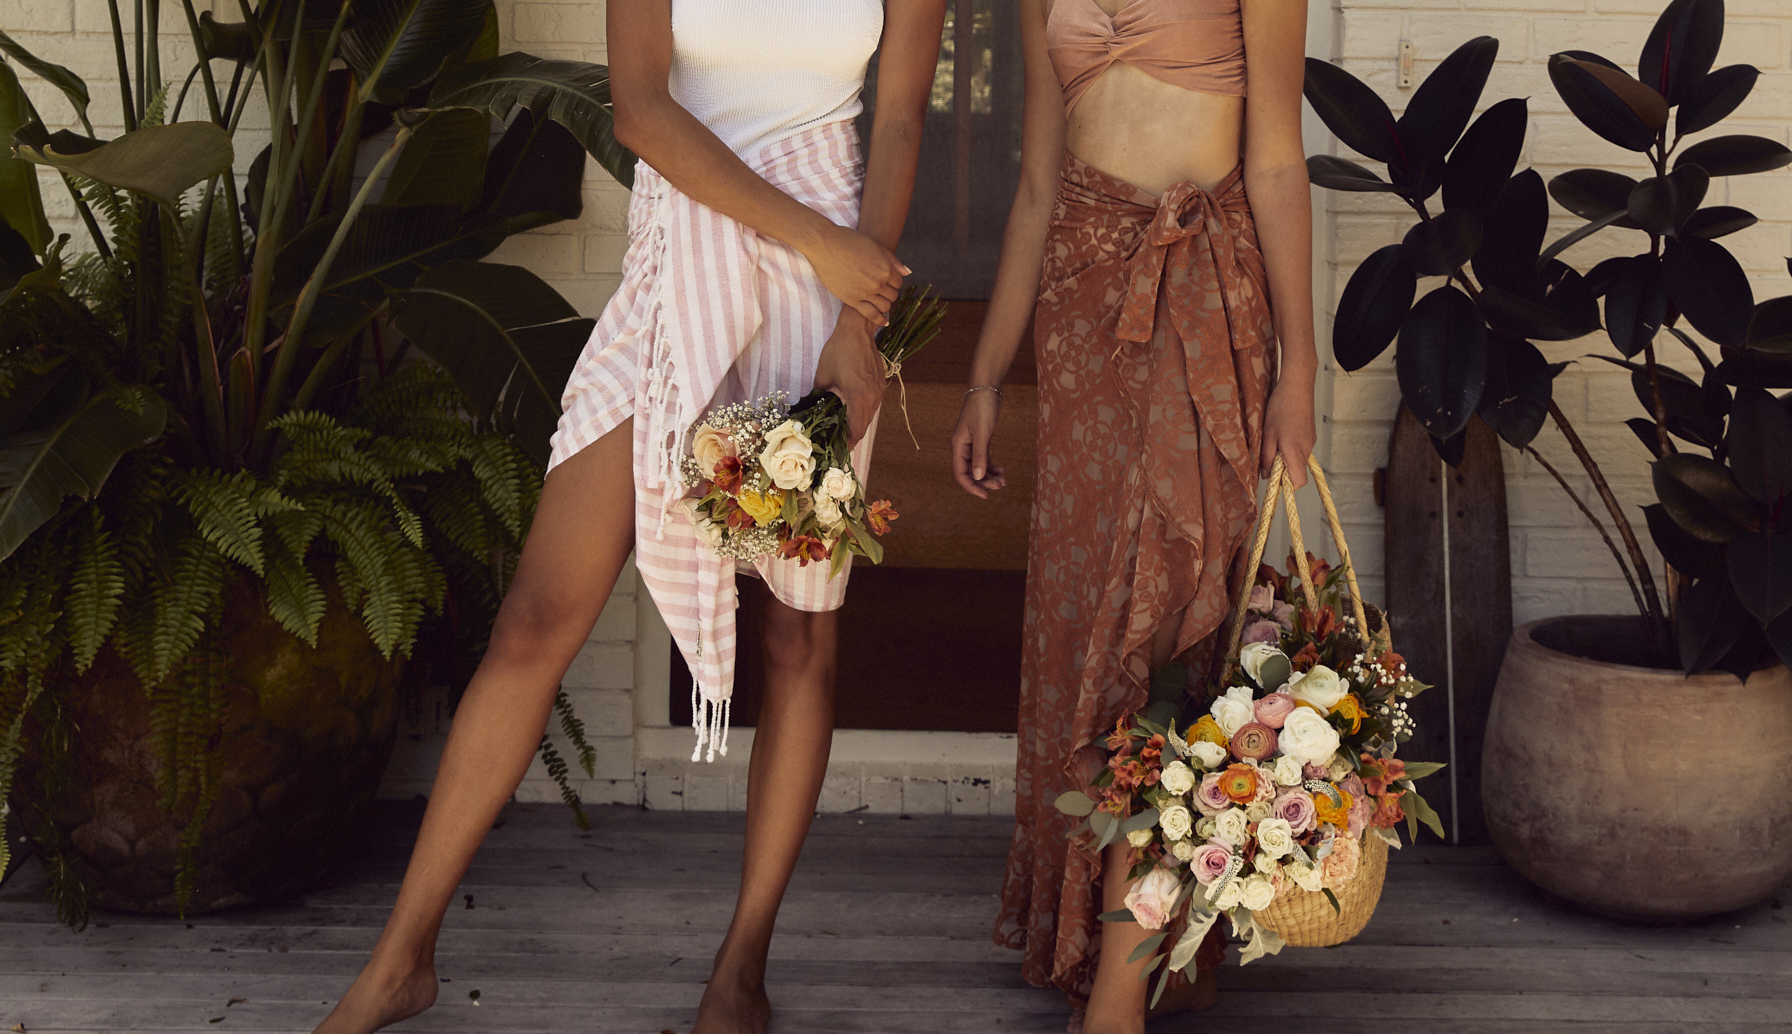 Two women standing on the steps of a beach house each holding a friendship bouquet